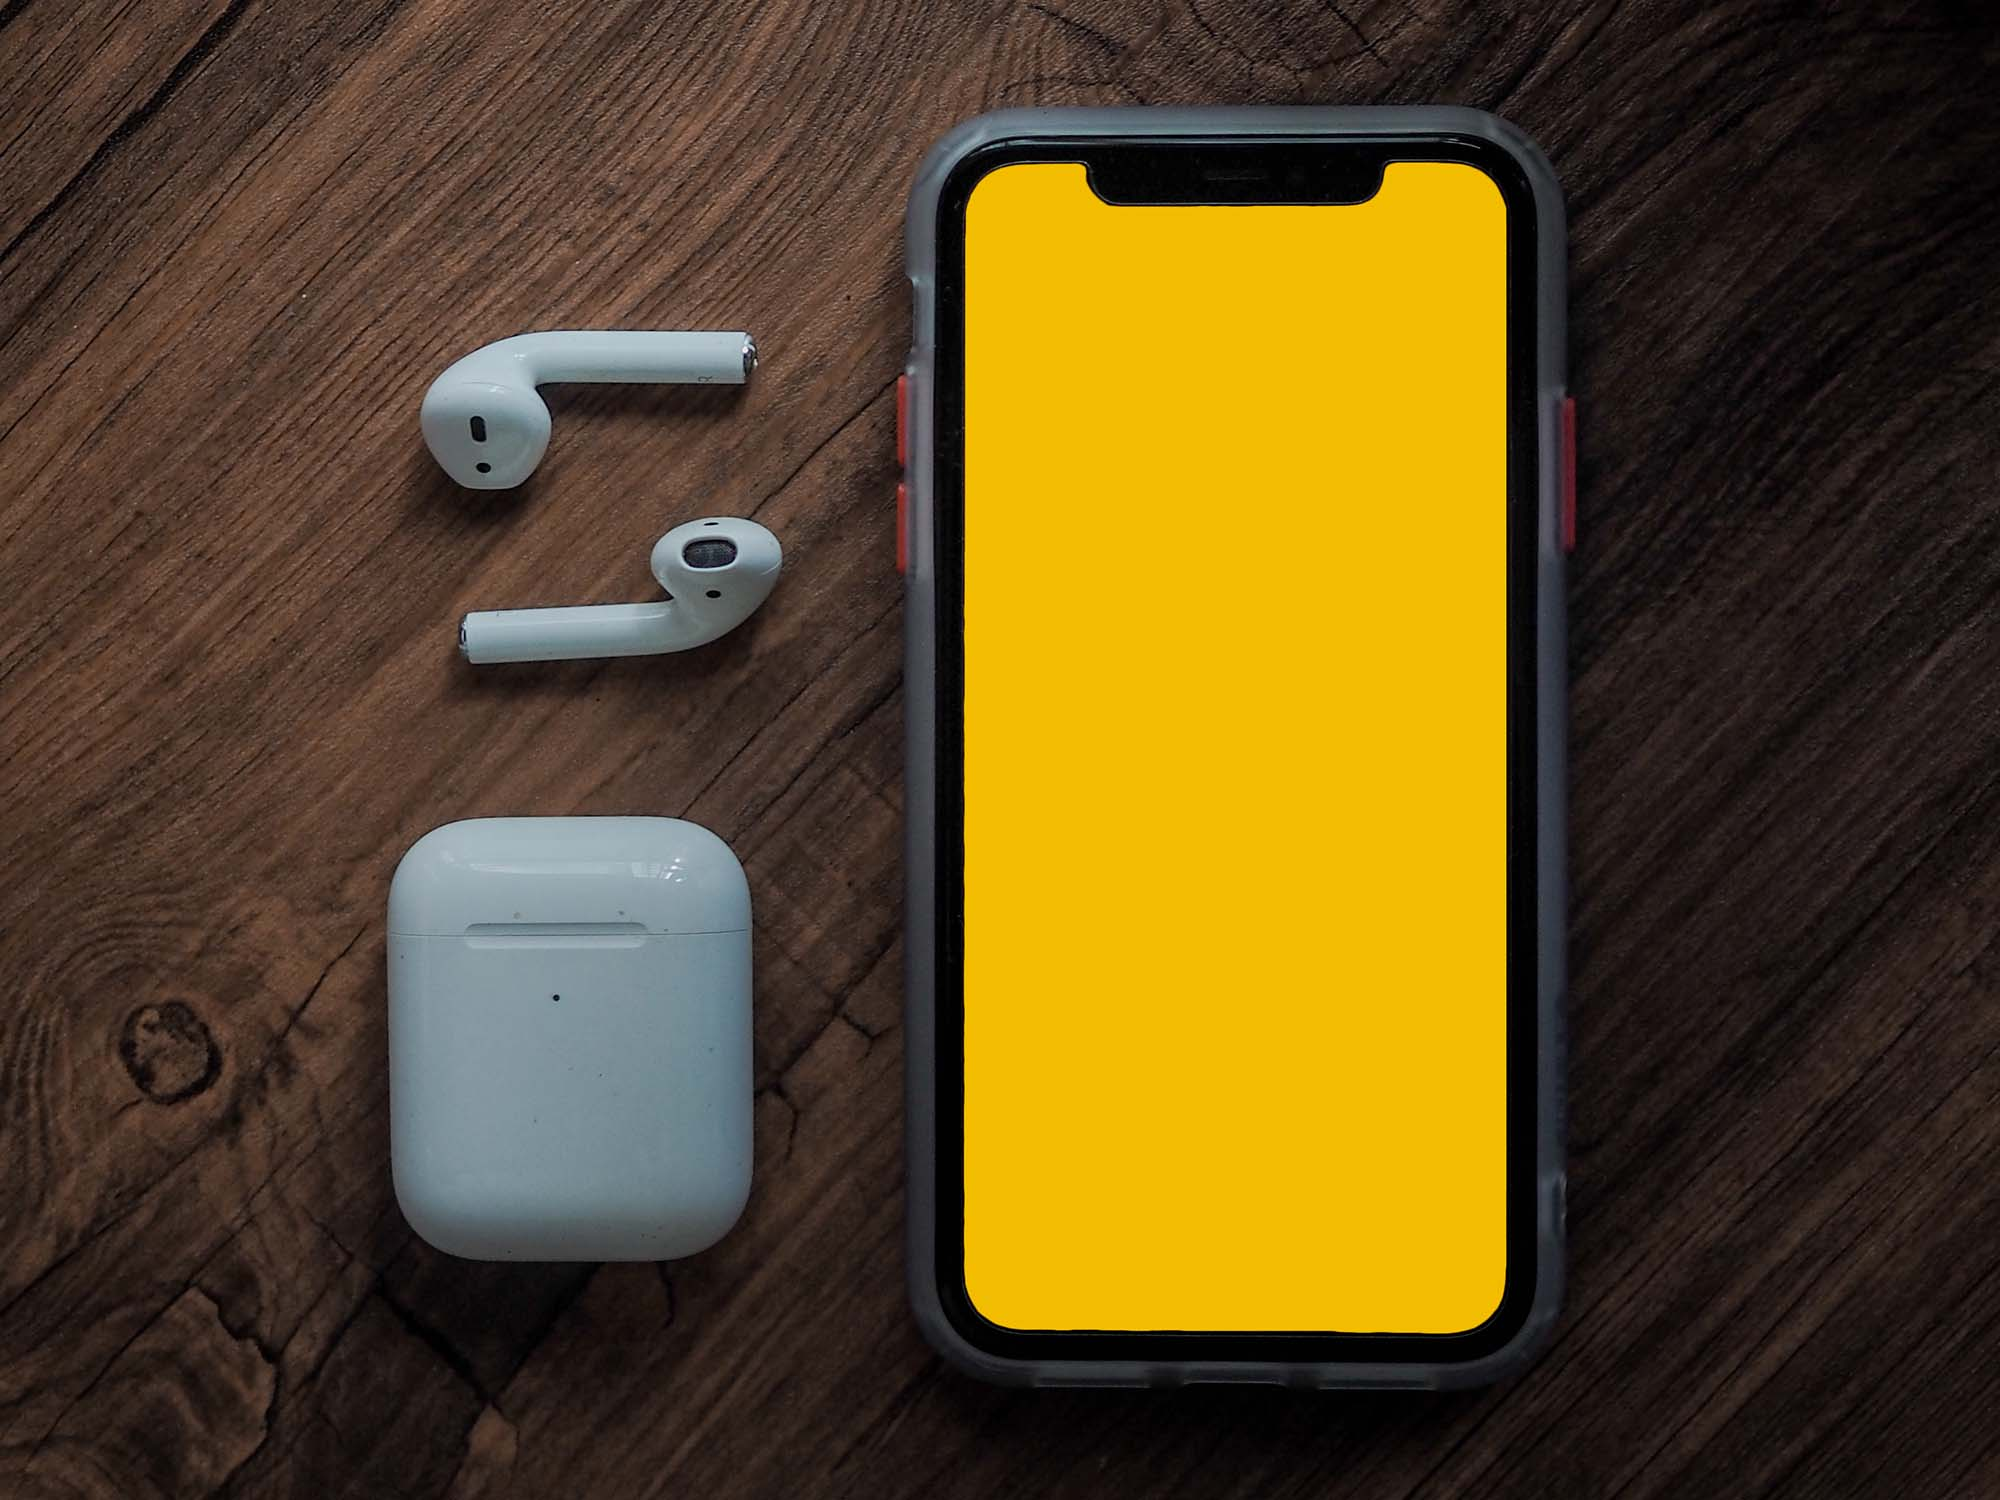 iPhone with AirPods Mockup 2